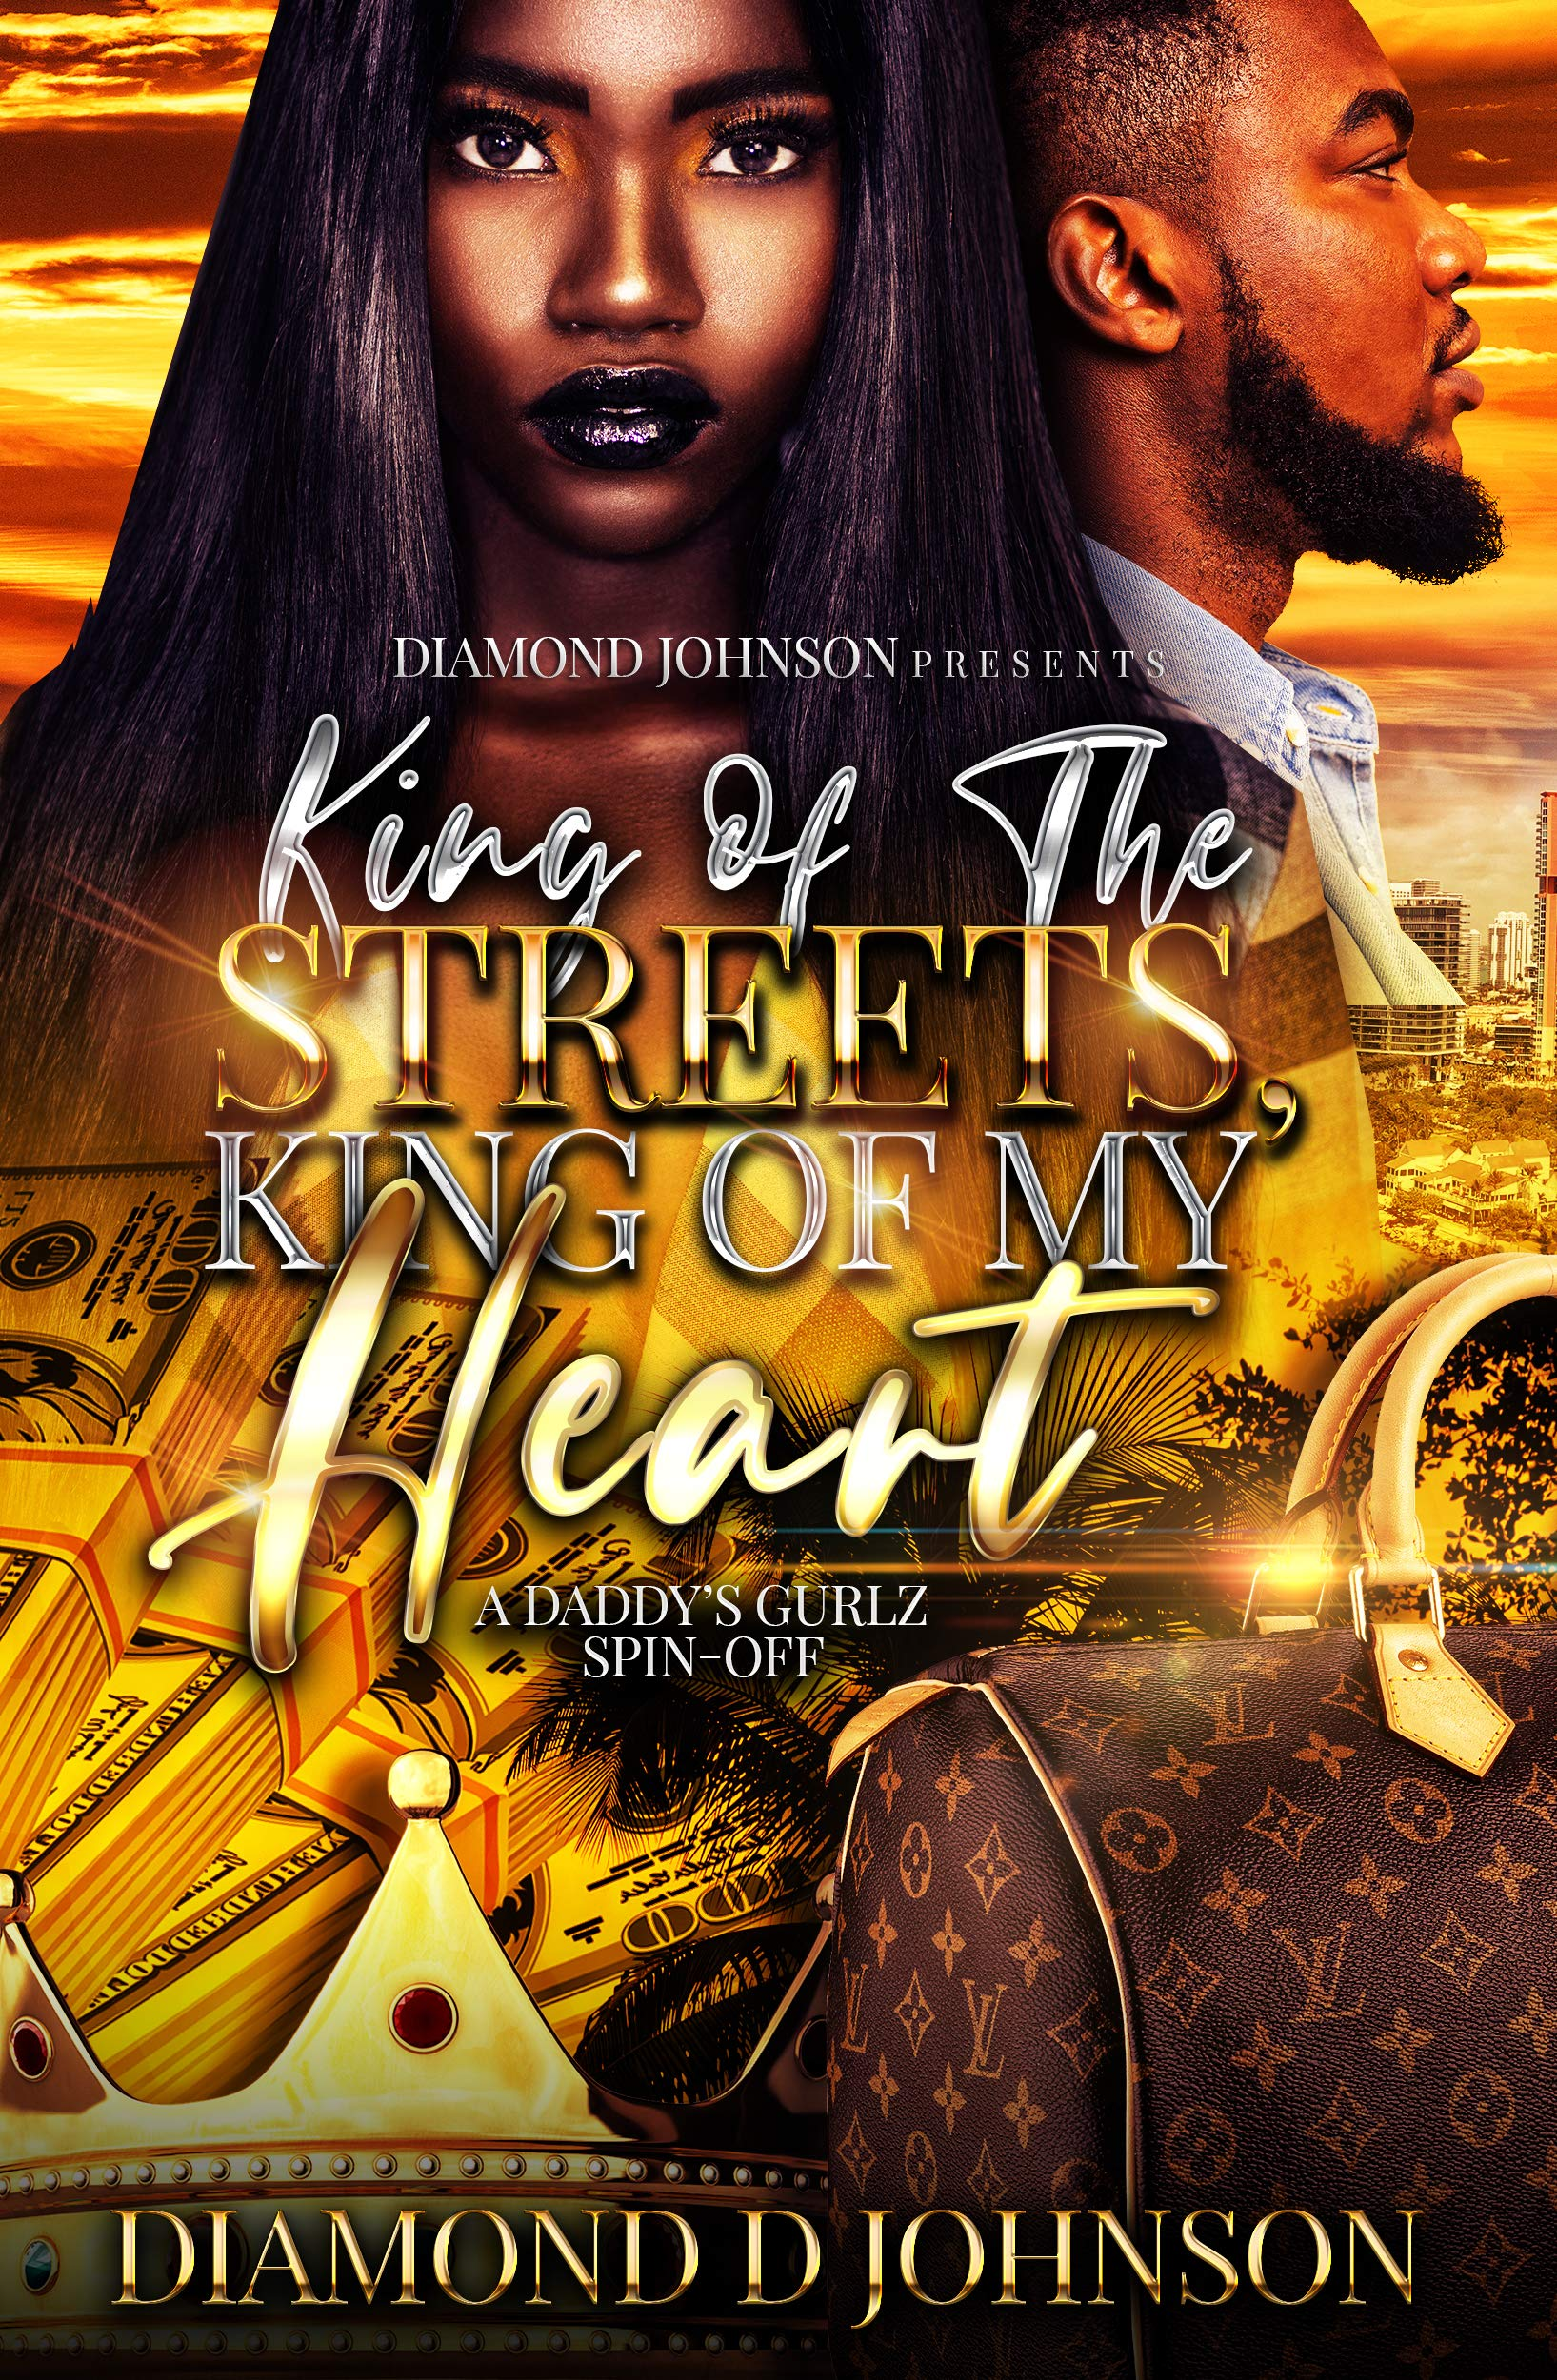 King Of The Streets, King Of My Heart: A Daddy's Gurlz Spin Off